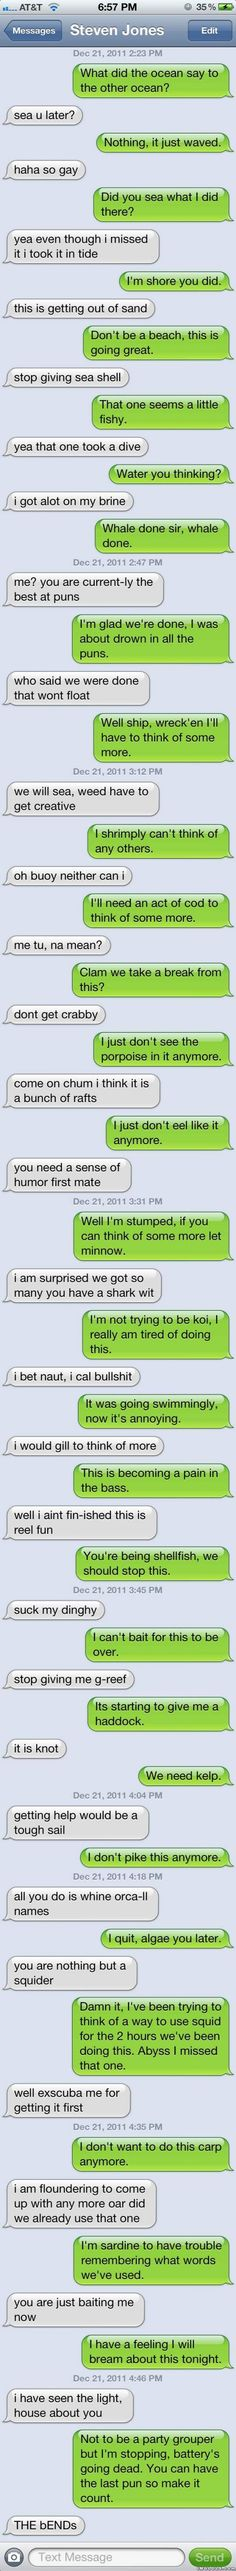 Text Puns Overload - http://www.imglols.com/text-puns-overload/